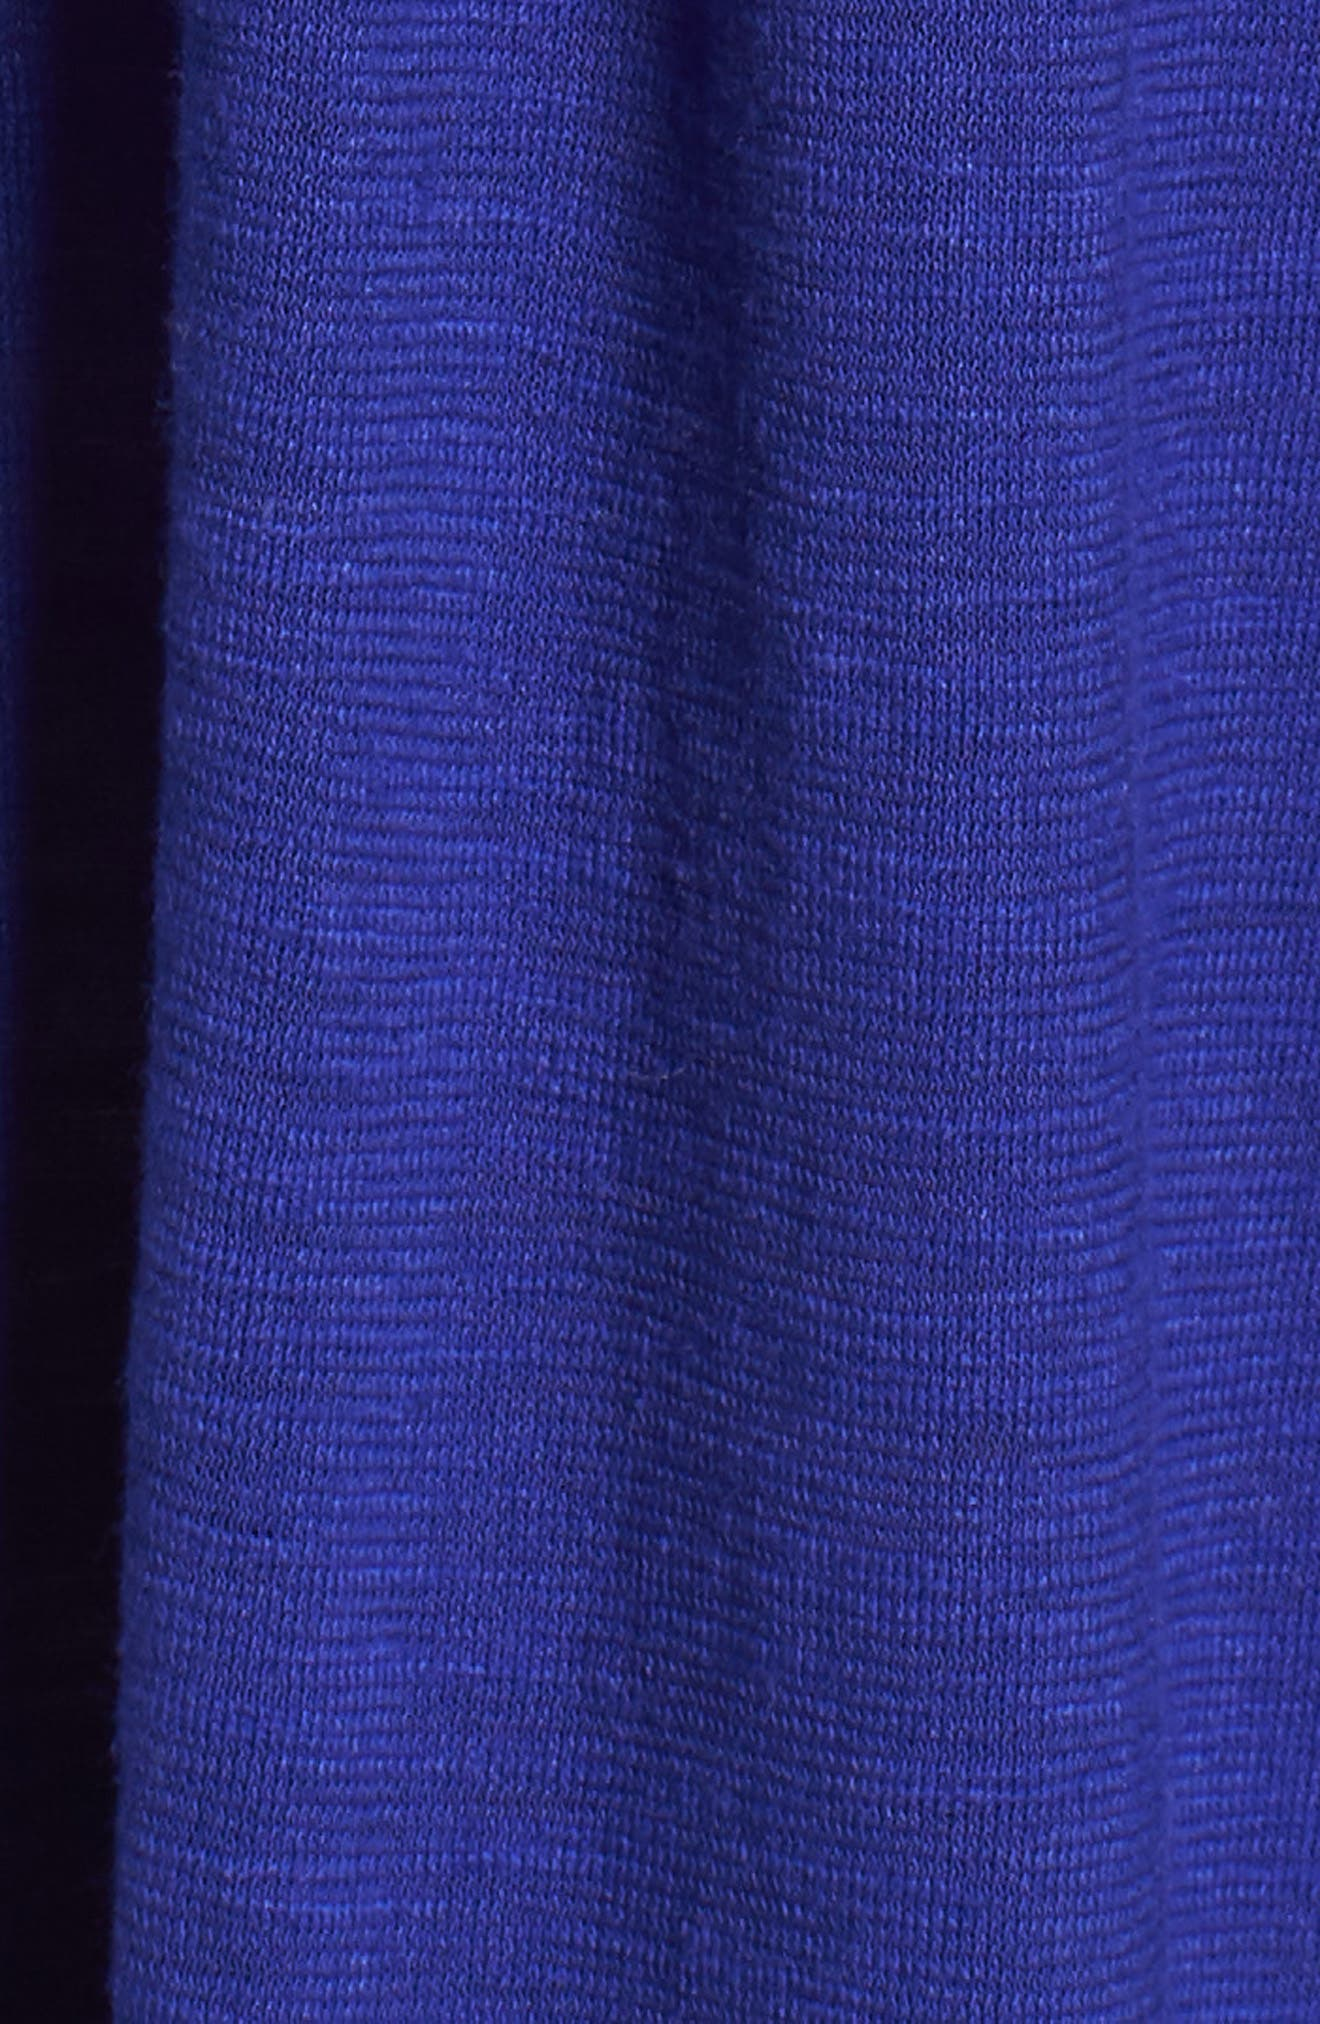 Scooped Neck Hemp & Cotton Midi Dress,                             Alternate thumbnail 6, color,                             BLUE VIOLET